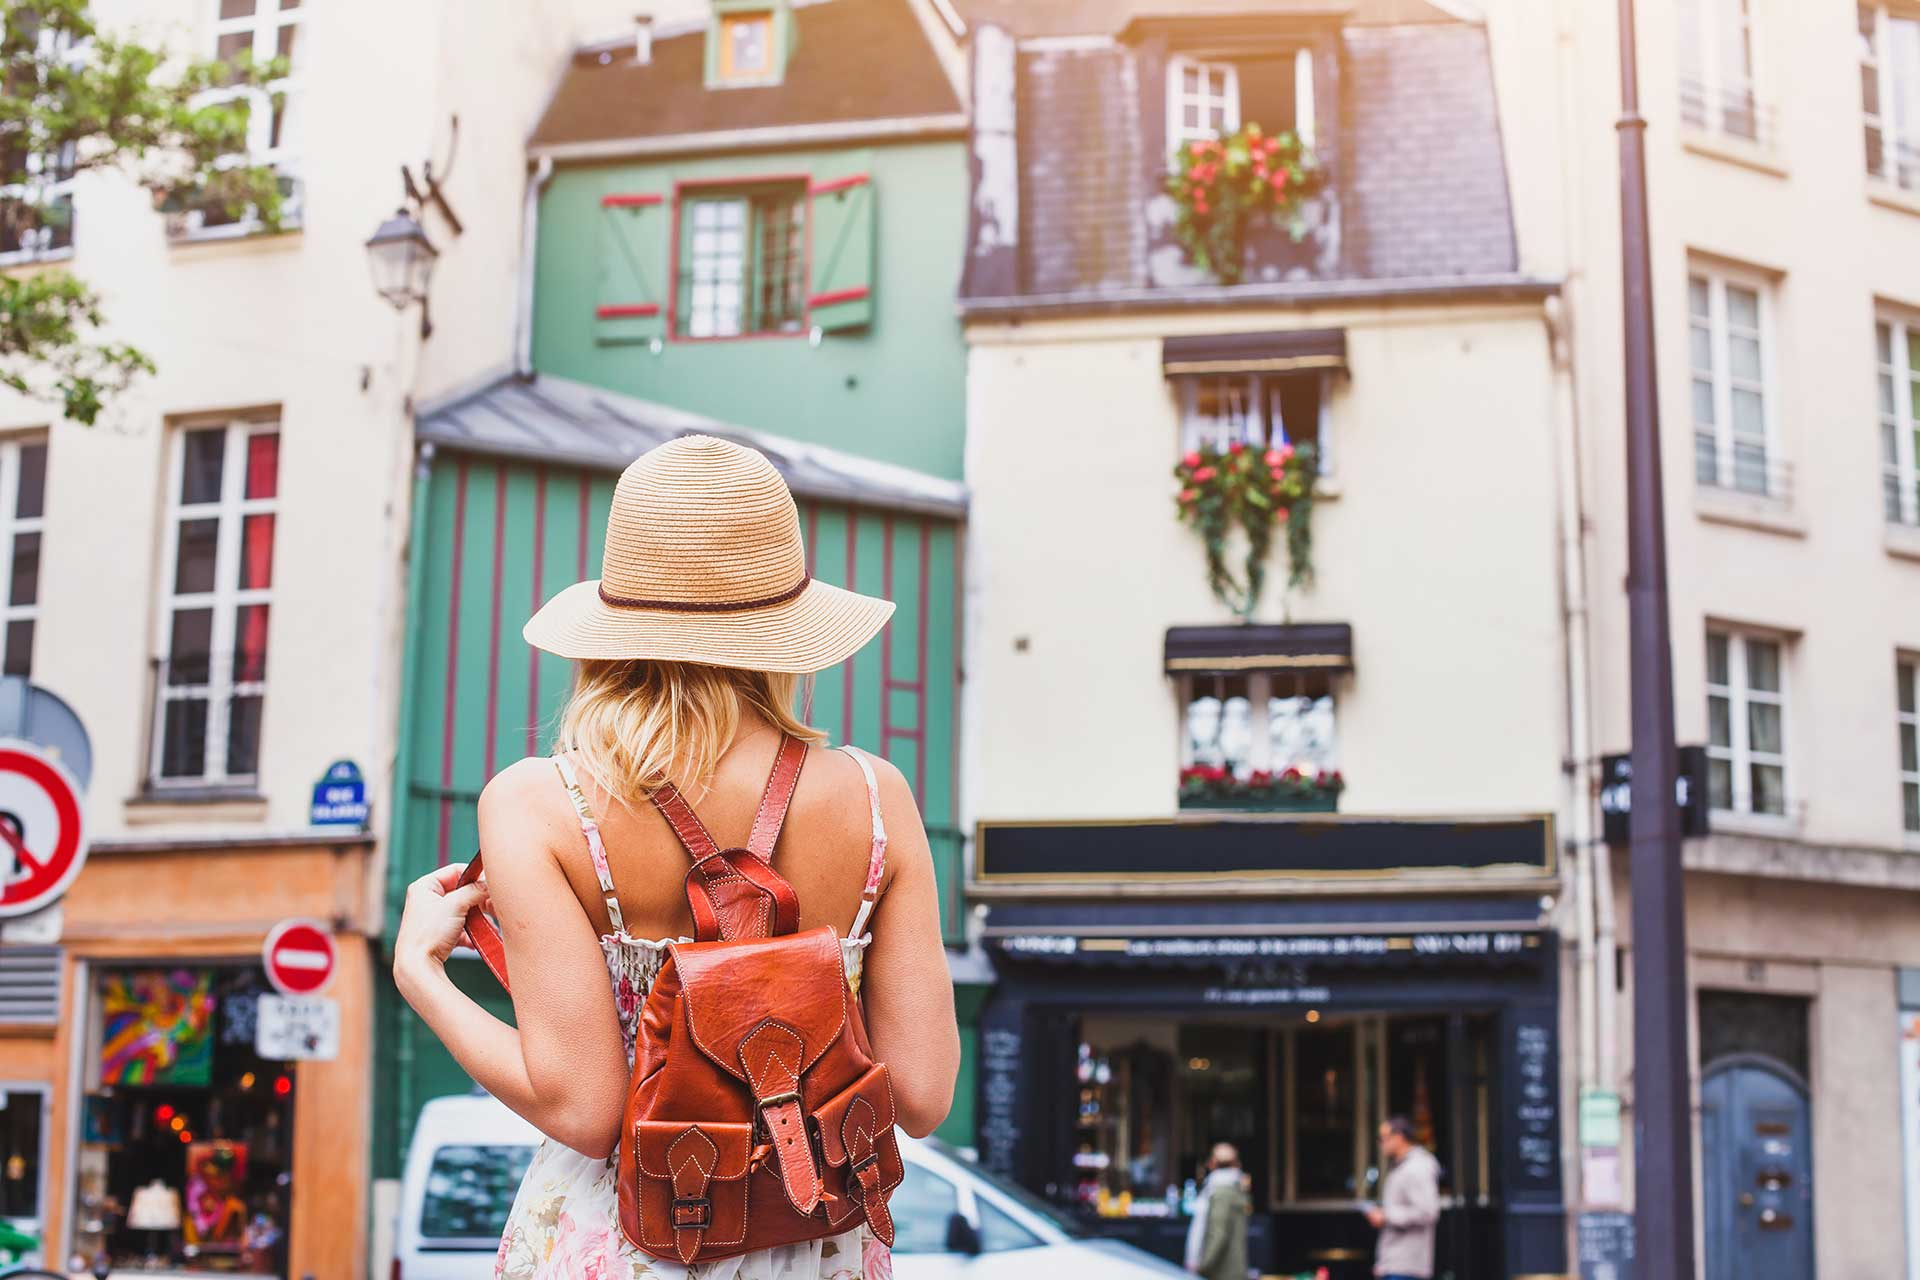 A photo taken from behind a young woman in a European city. She has a wide brimmed, straw hat and is wearing a summer dress, with a small, brown leather backpack.